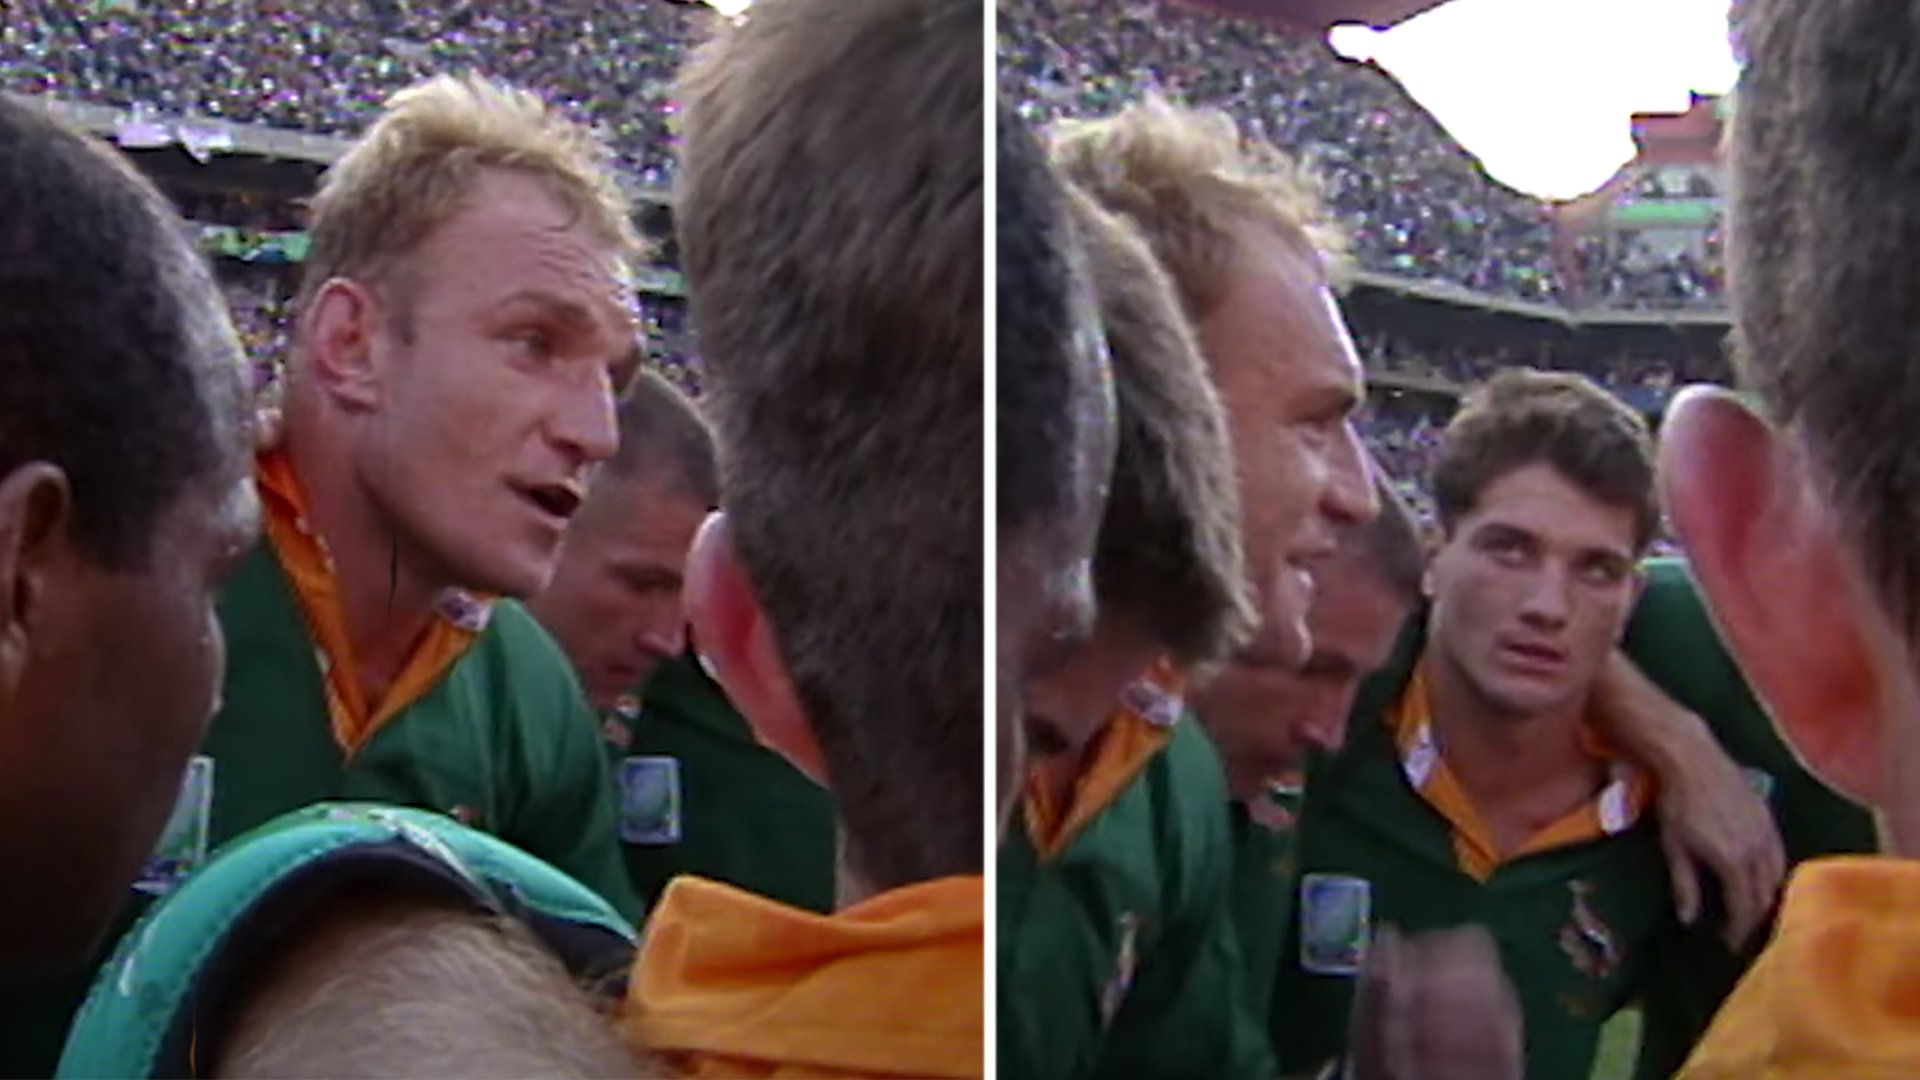 World Rugby have just released the incredible Francois Pienaar teamtalk that won the World Cup